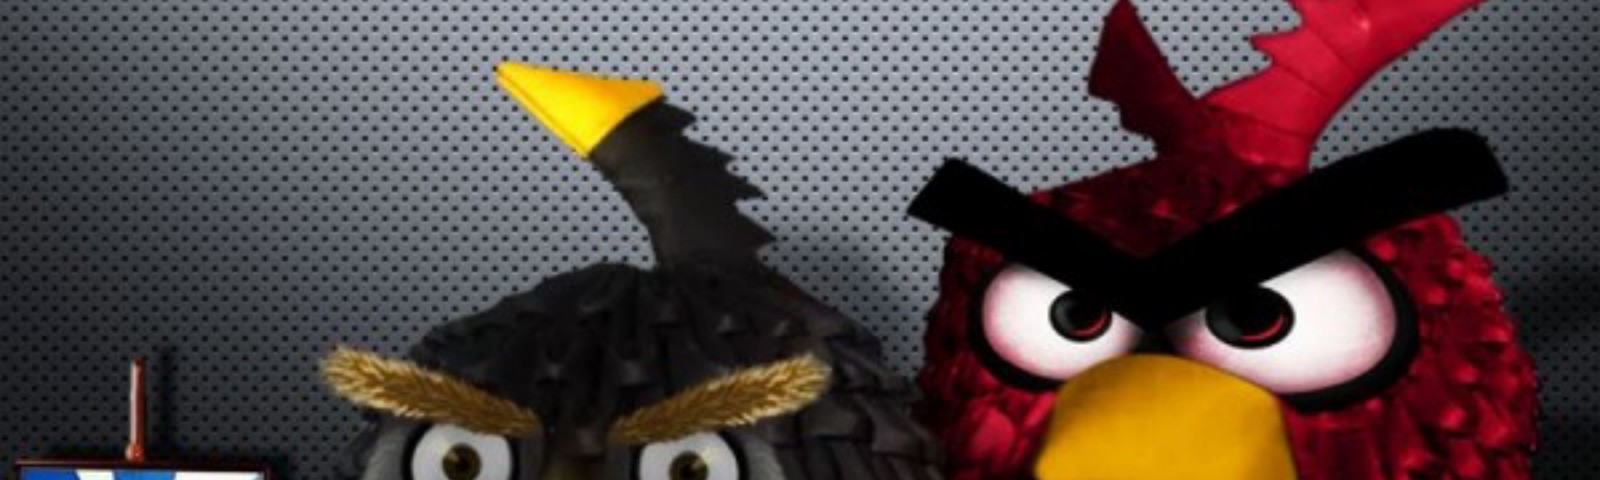 angry birds origami 3d